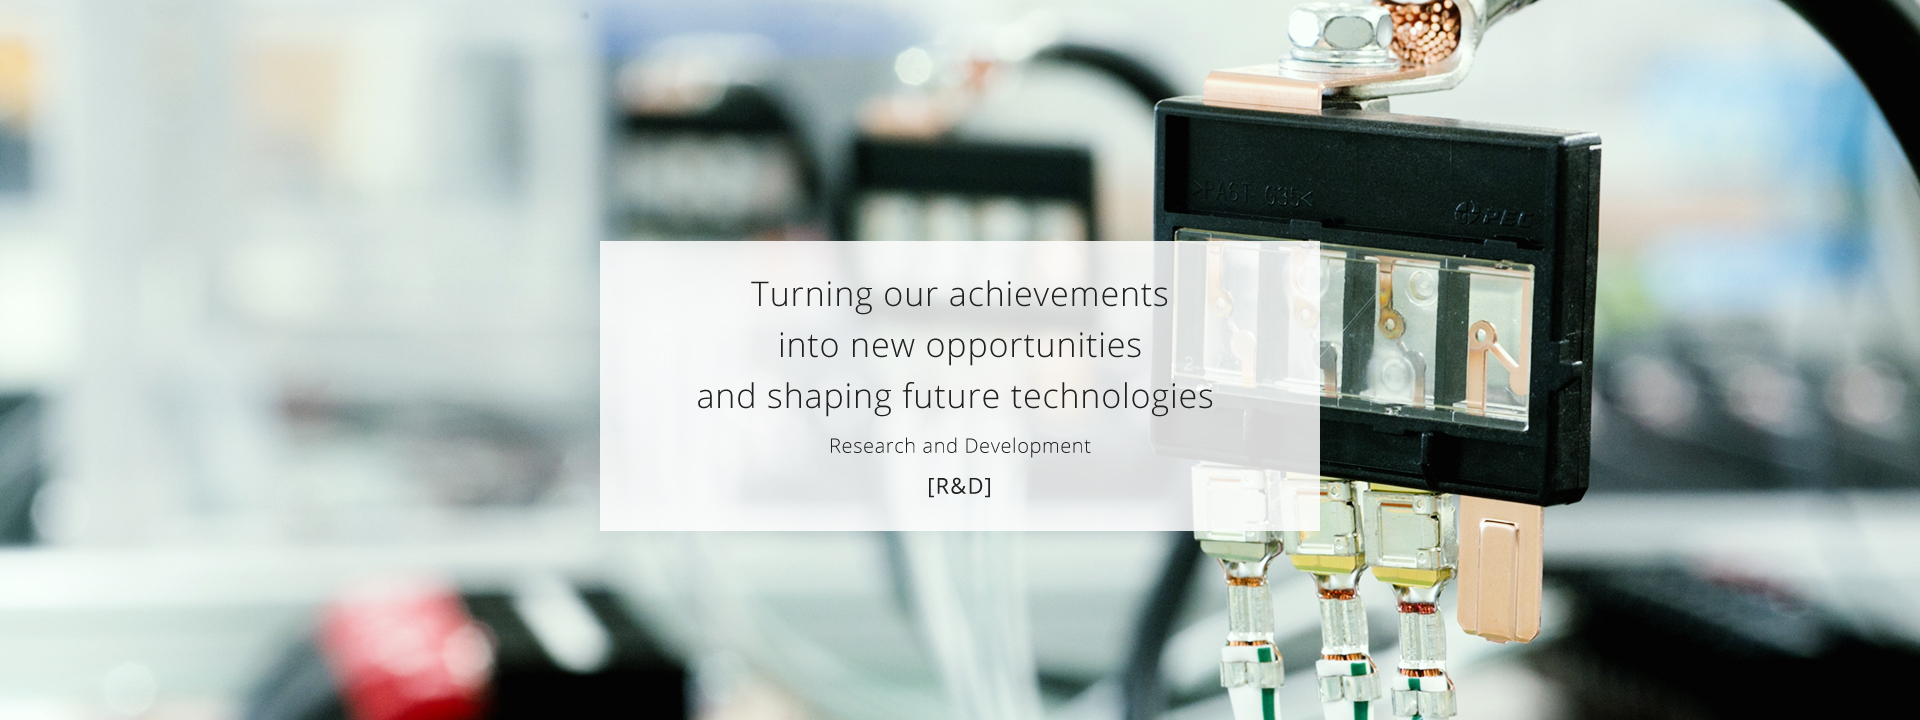 Turning our achievements into new opportunities and shaping future technologies [R&D]